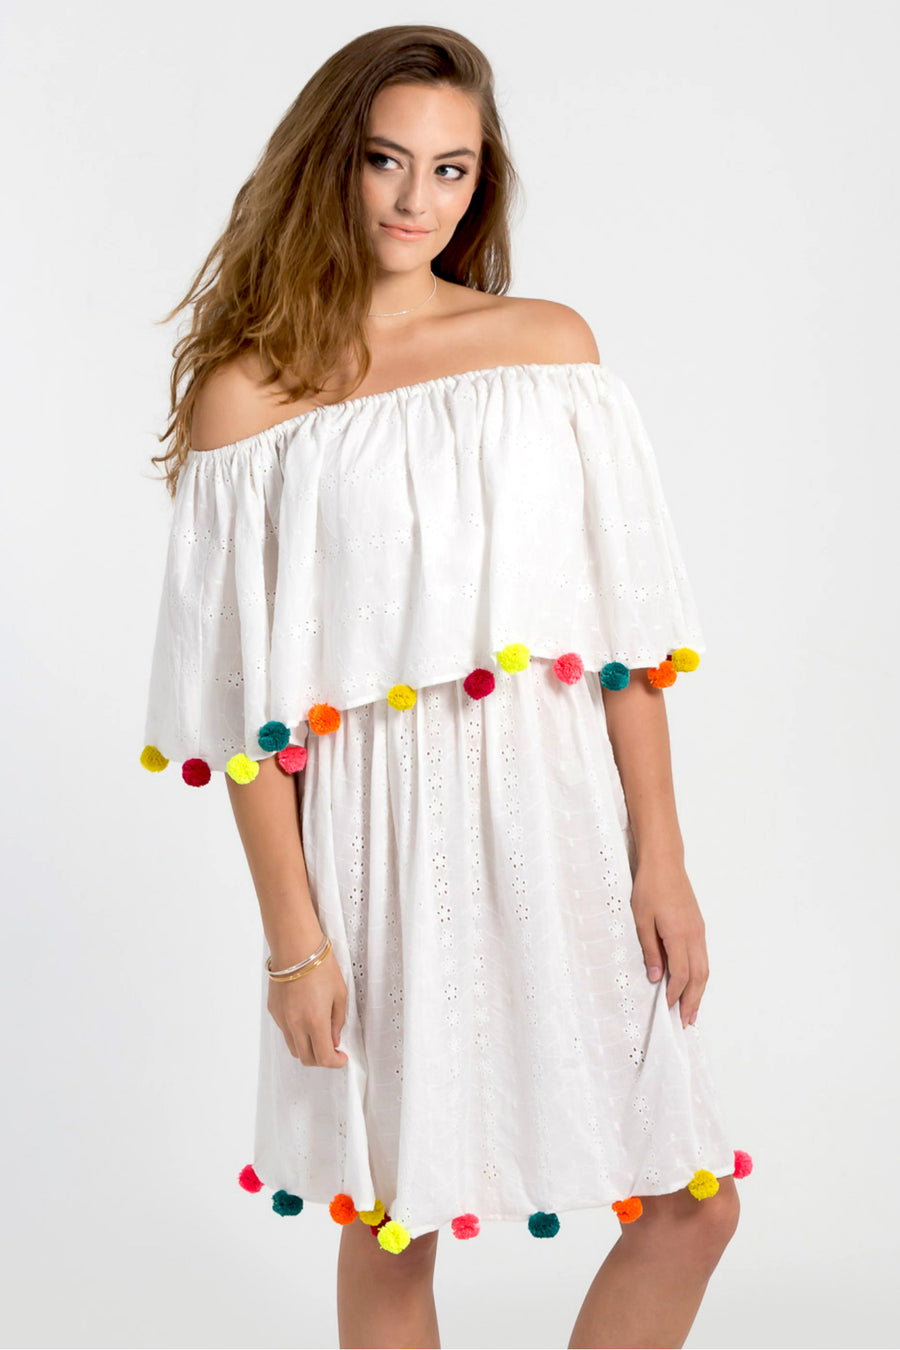 Ethically made rainbow pom pom off shoulder dress by Baliza available at ZERRIN